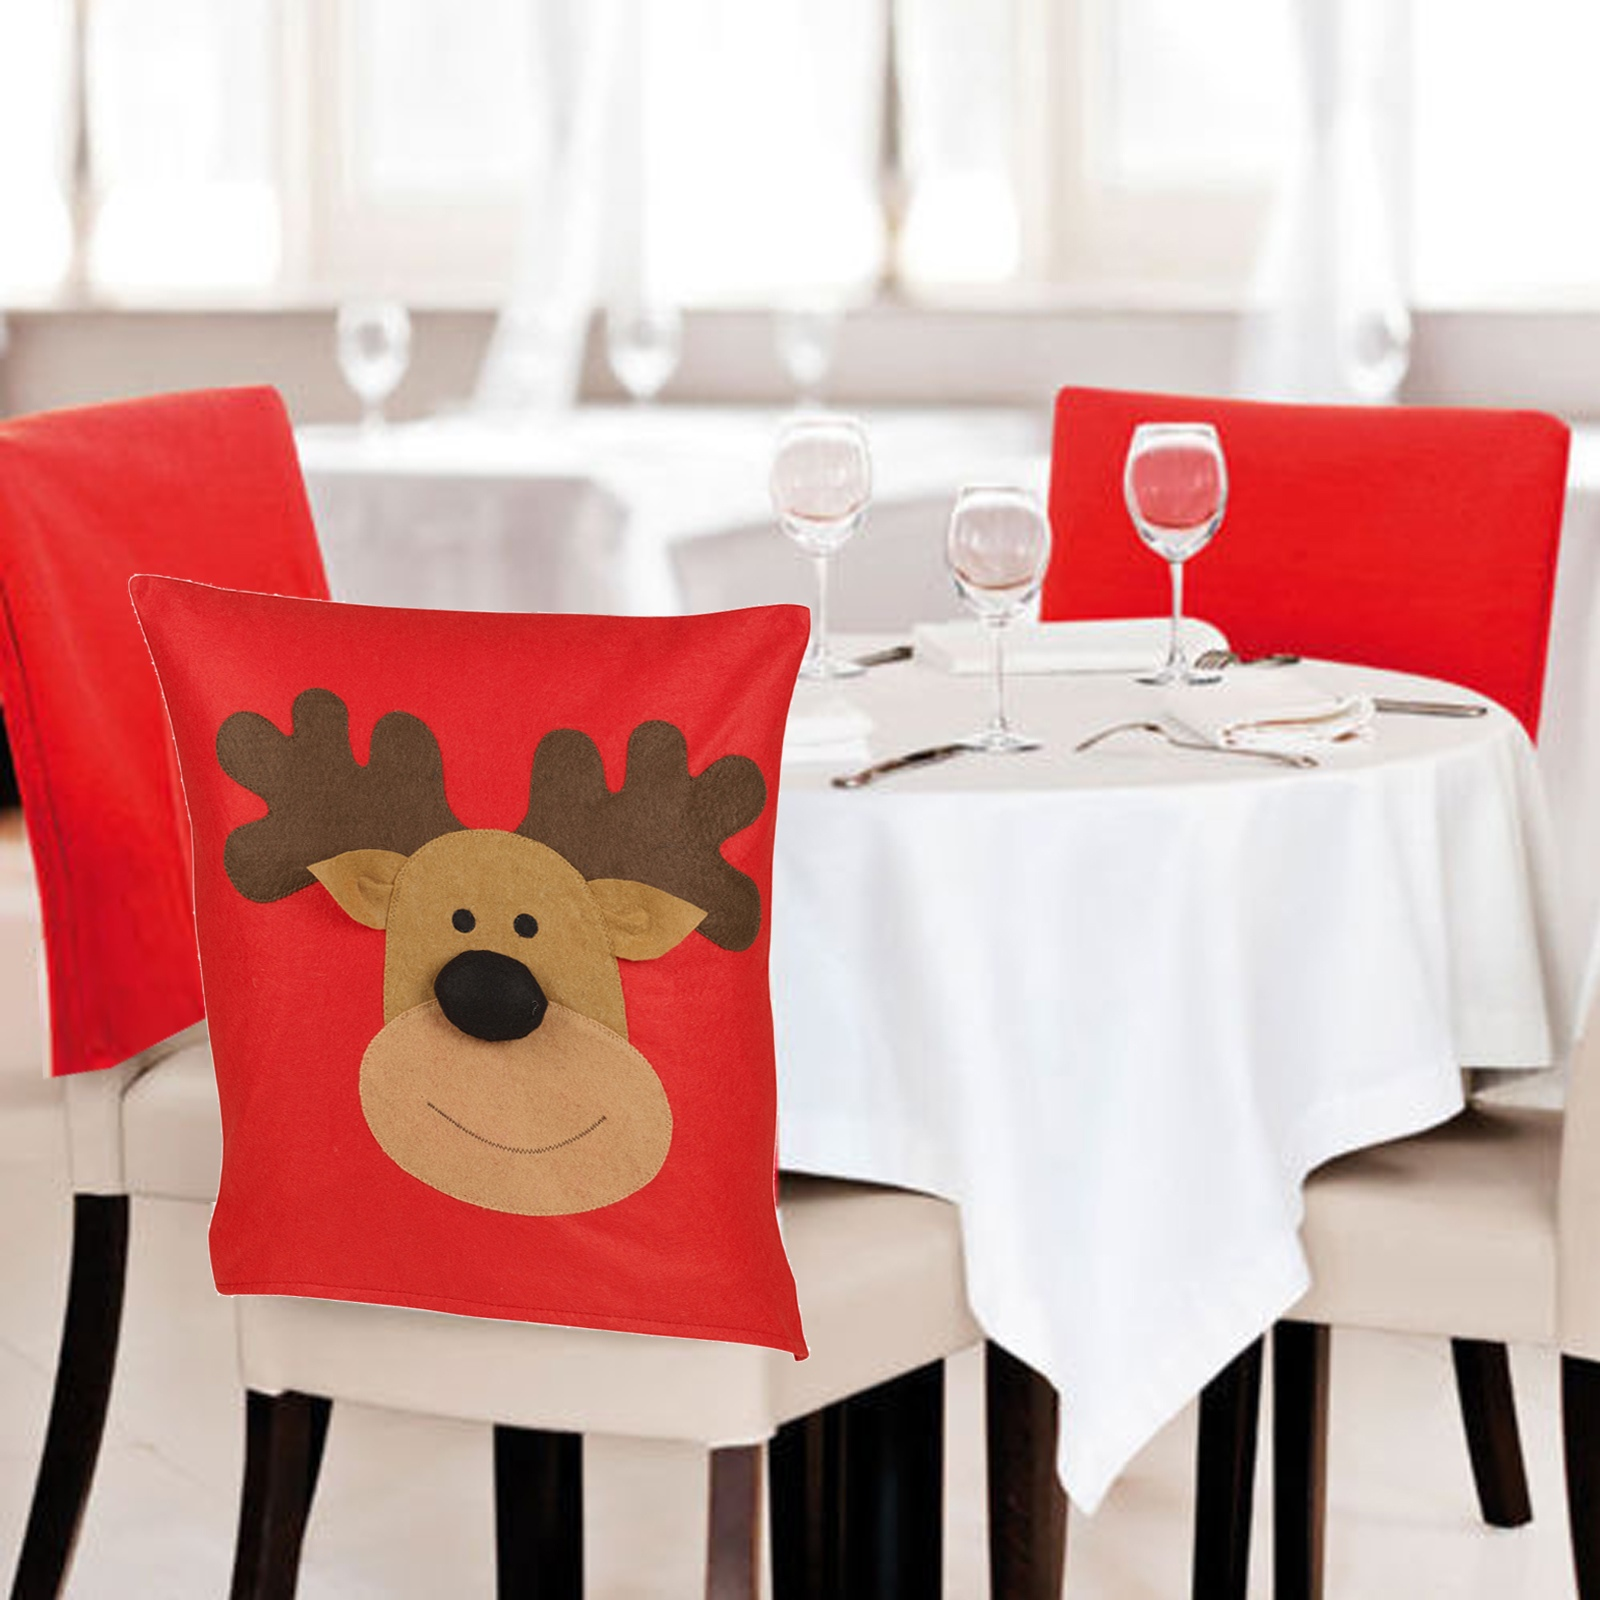 dining chair covers for christmas outdoor chairs sale 4 6 reindeer back party xmas